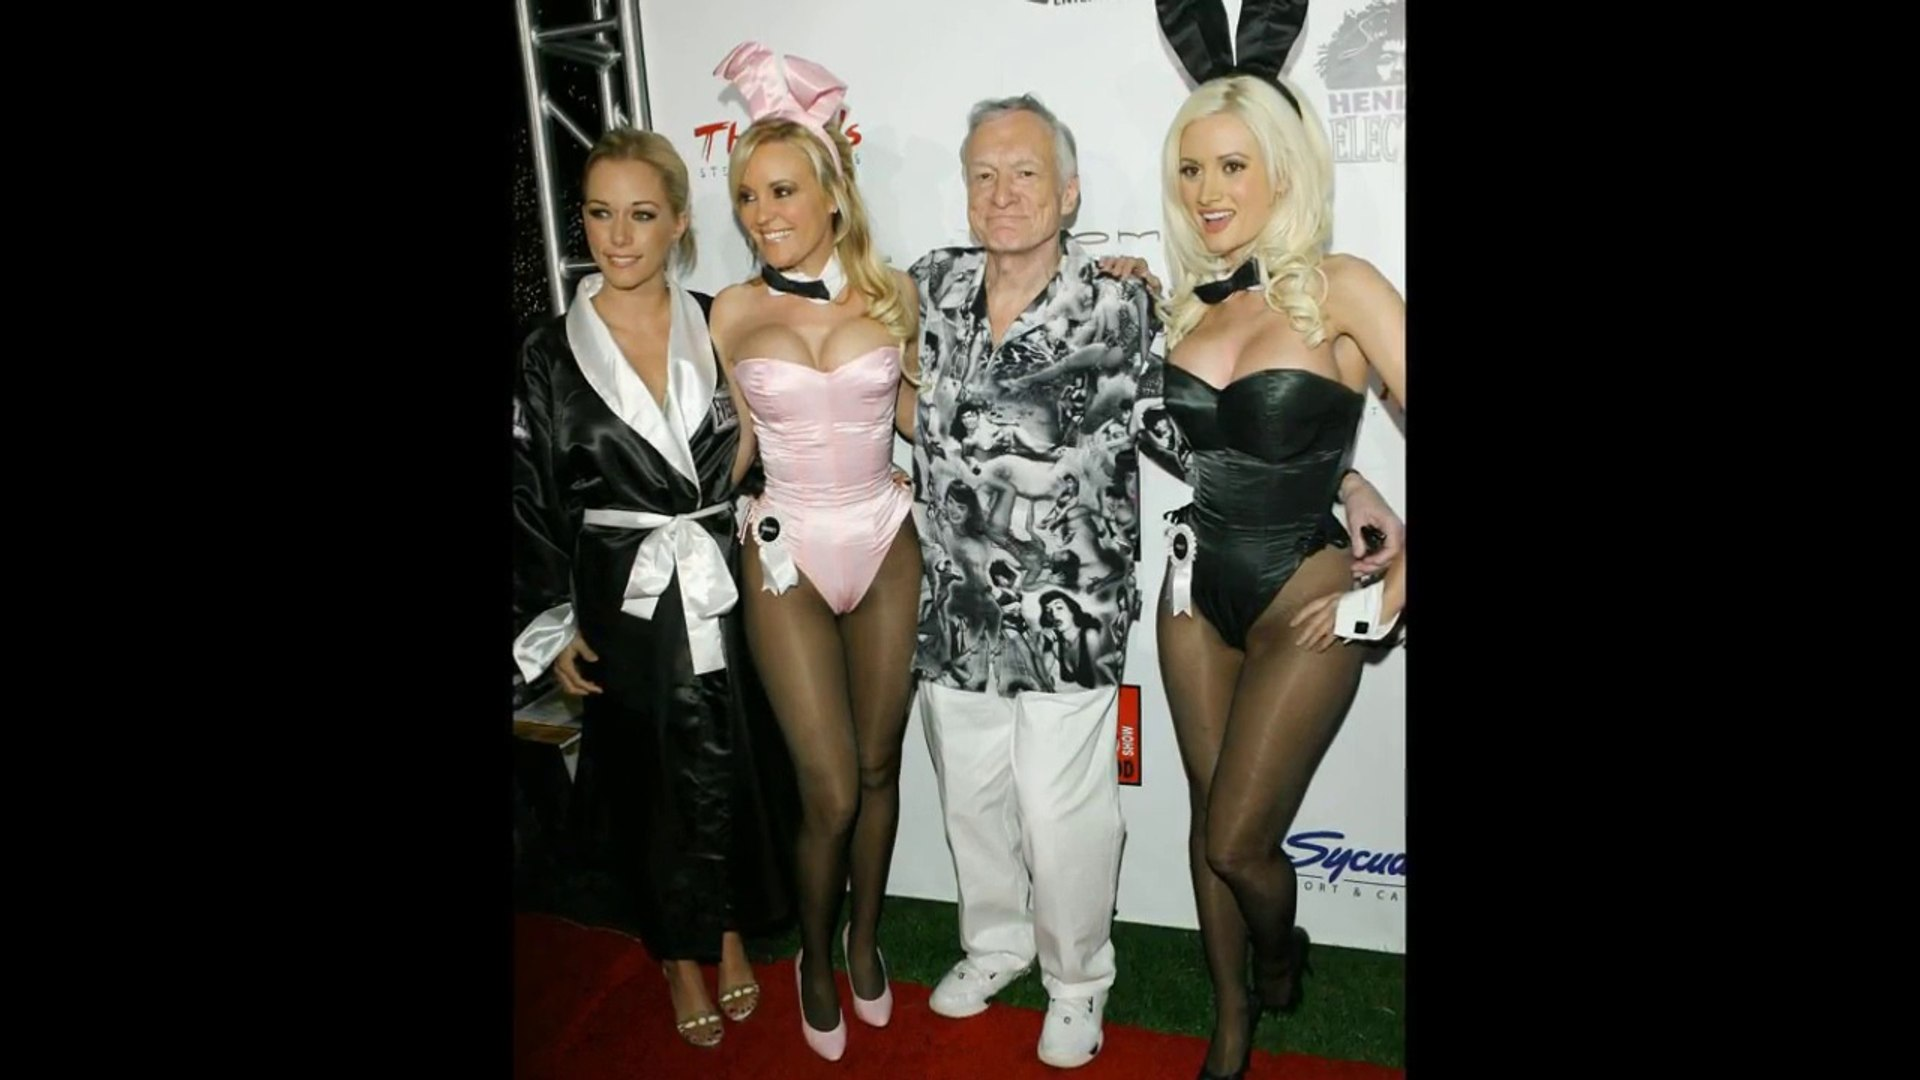 I Was Miserable Hef S Ex Holly Madison Reveals Awful Truth About Life At Playboy Mansion Video Dailymotion